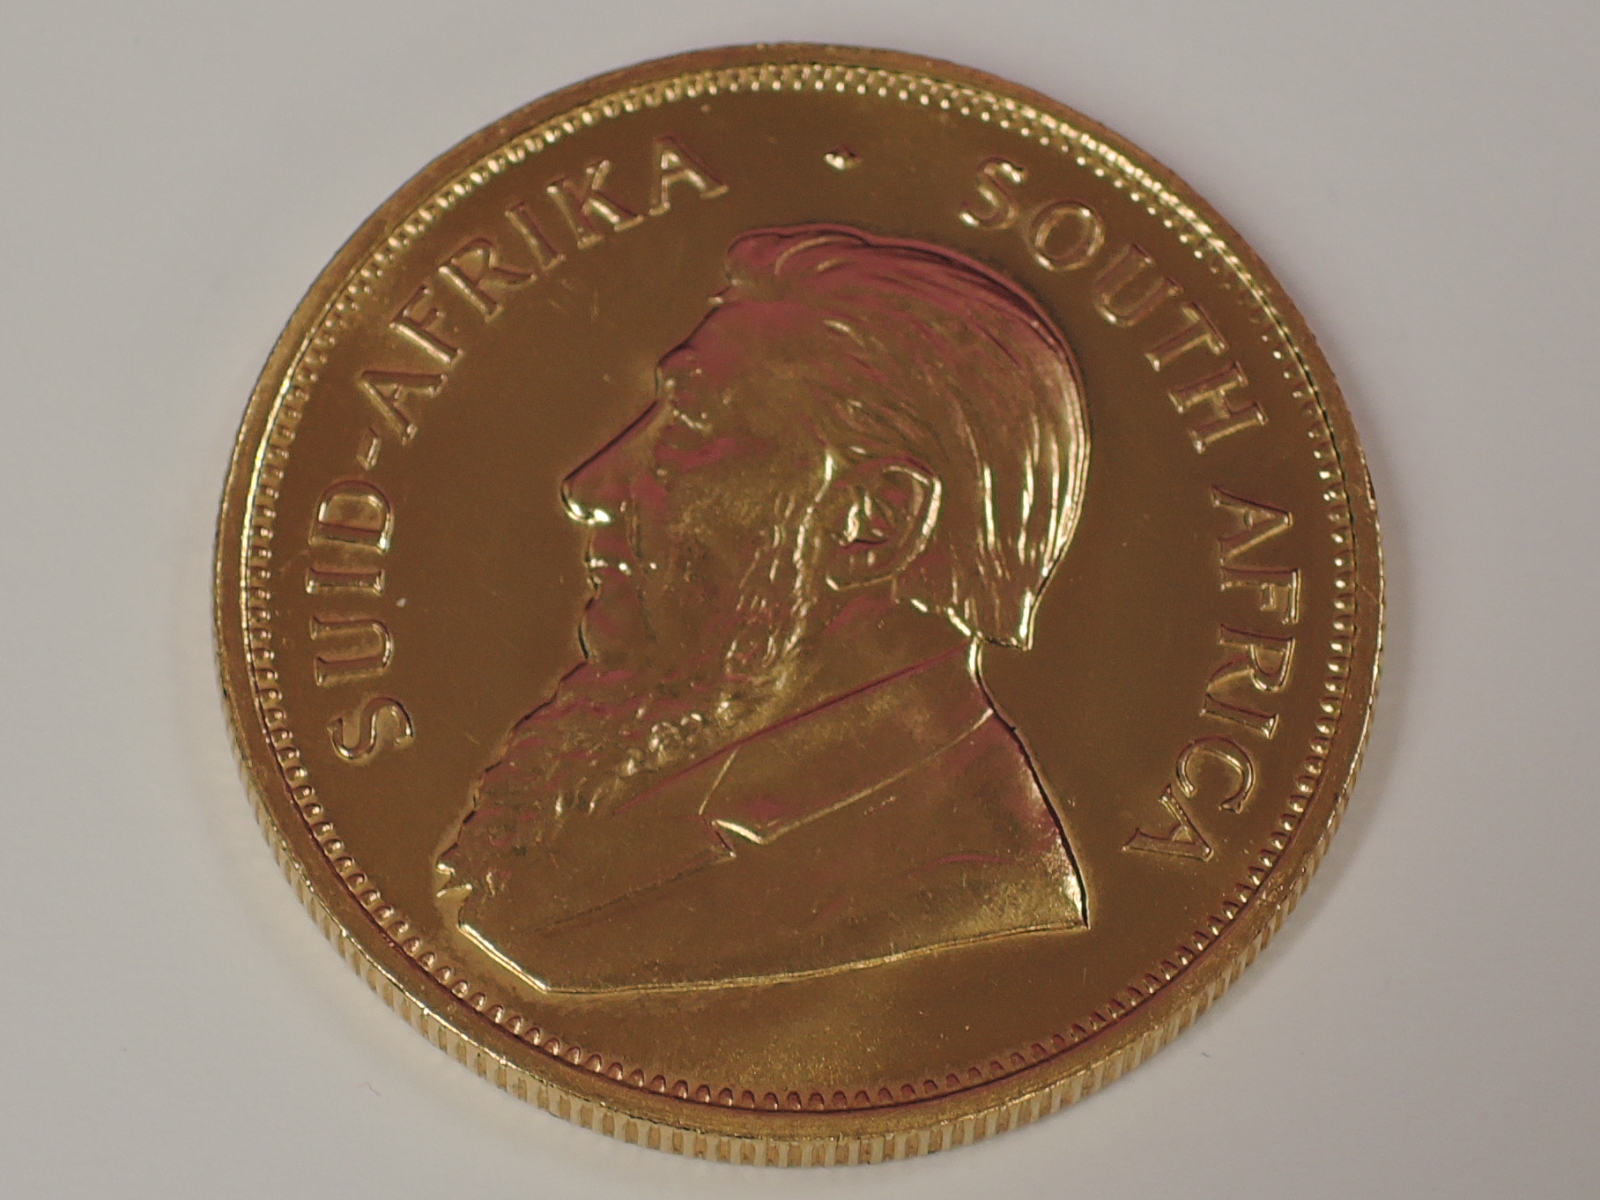 Lot 623 - A gold 1oz 1979 South African Krugerrand coin, in plastic case